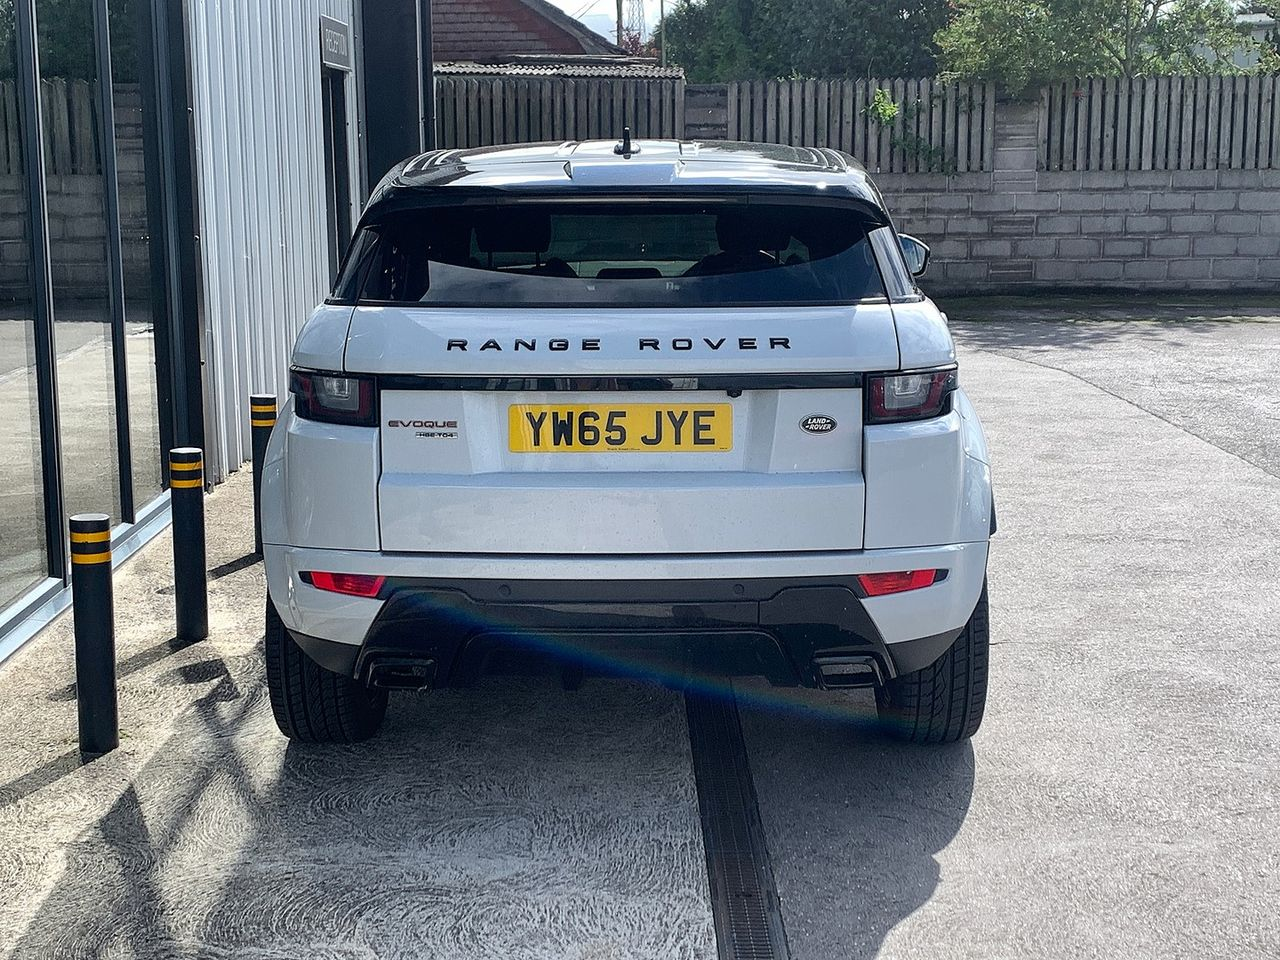 2015 LAND ROVER Range Rover Evoque Td4 180hp HSE Dynamic 9Sp Auto 4WD - Picture 5 of 11